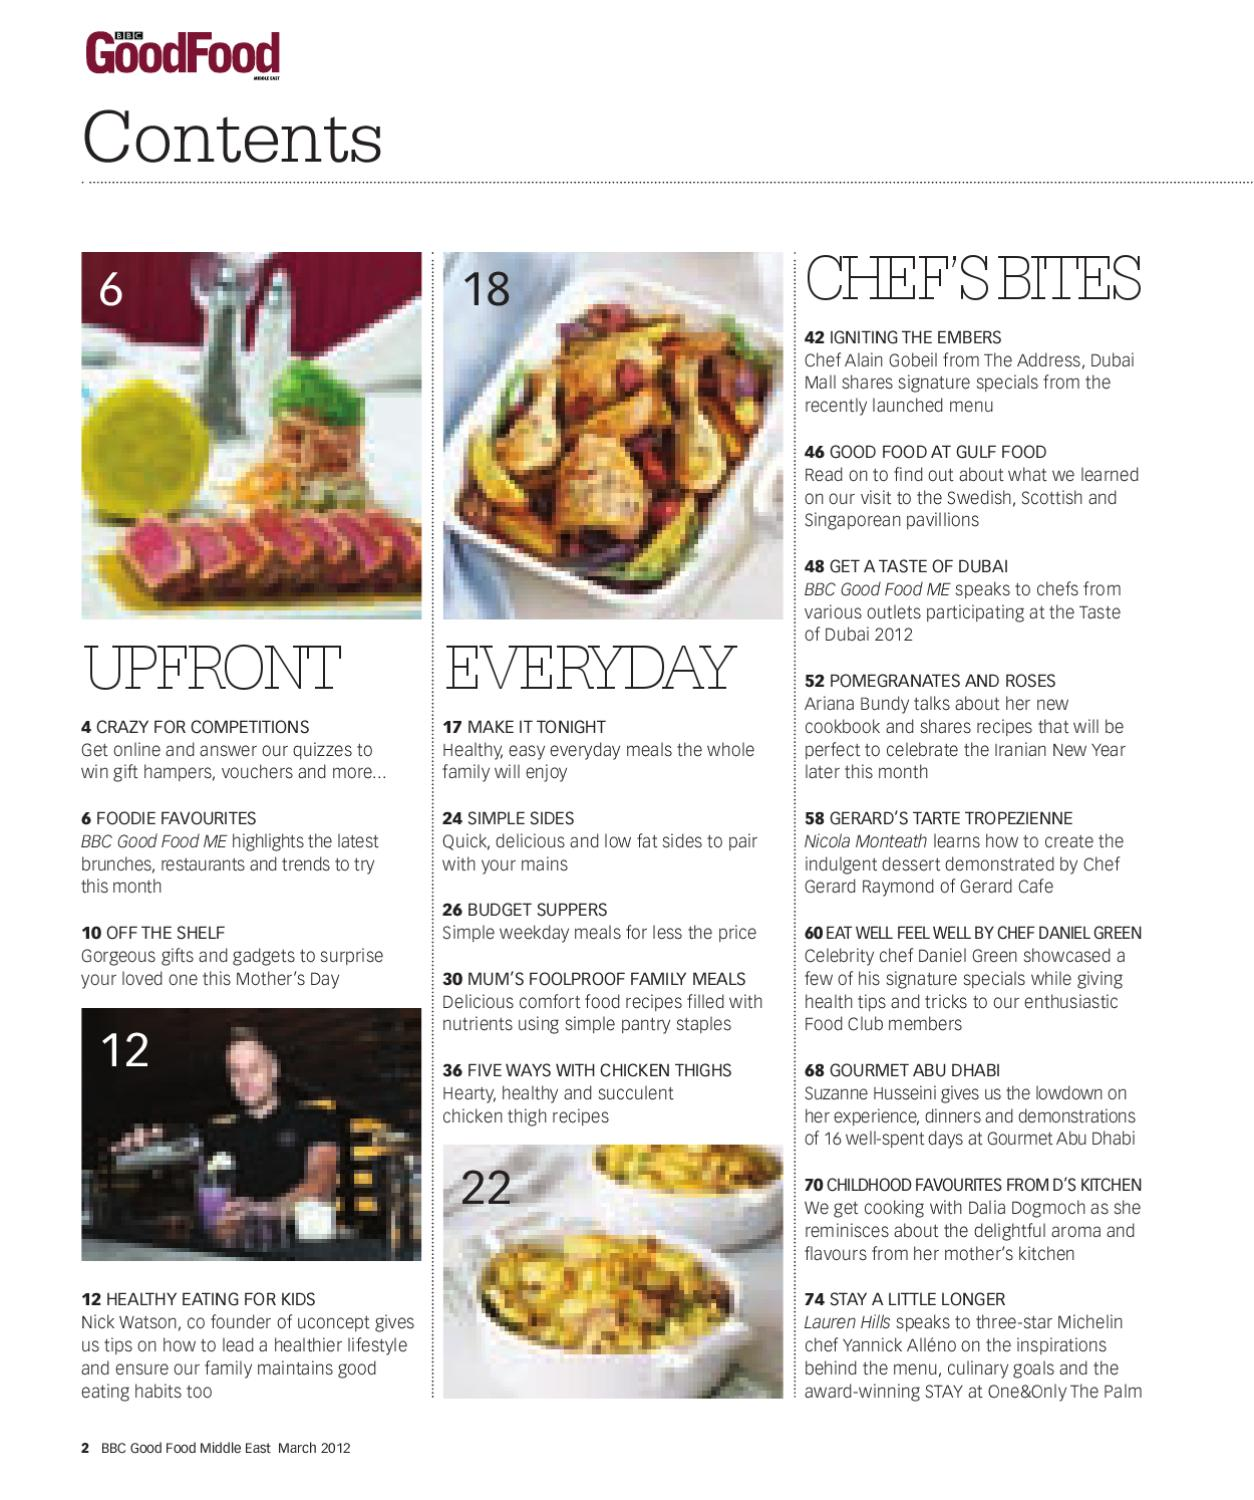 Bbc good food middle east magazine by bbc good food me issuu forumfinder Gallery